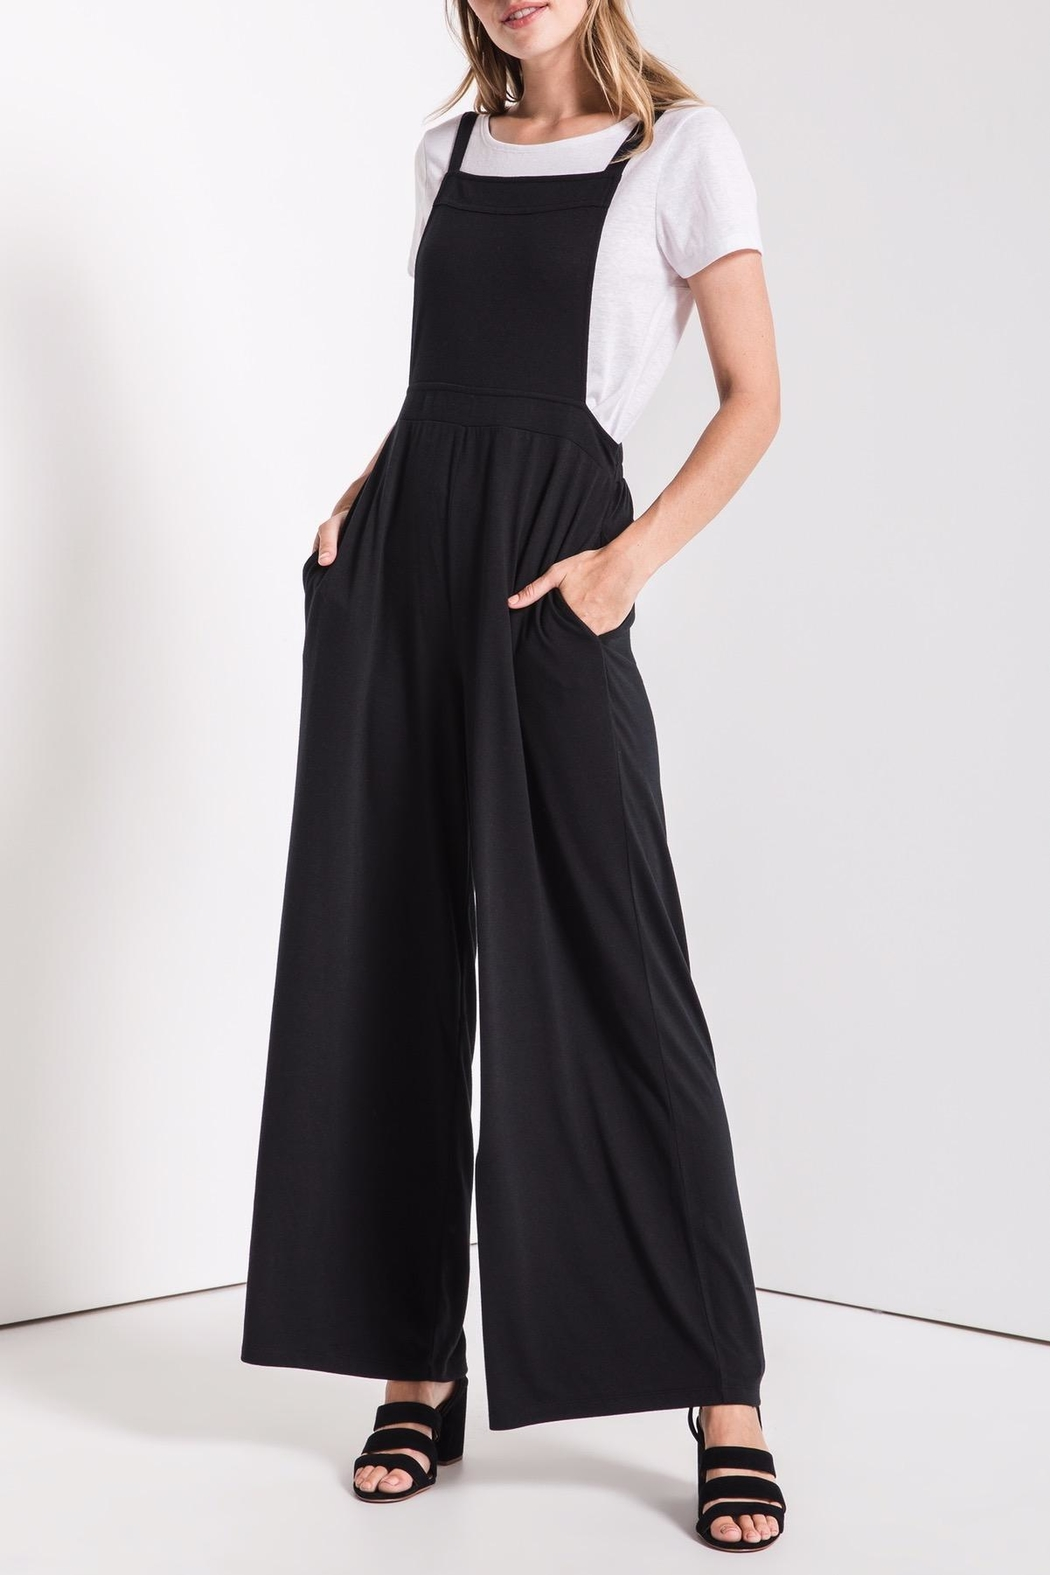 z supply Overall Styled Jumpsuit - Side Cropped Image